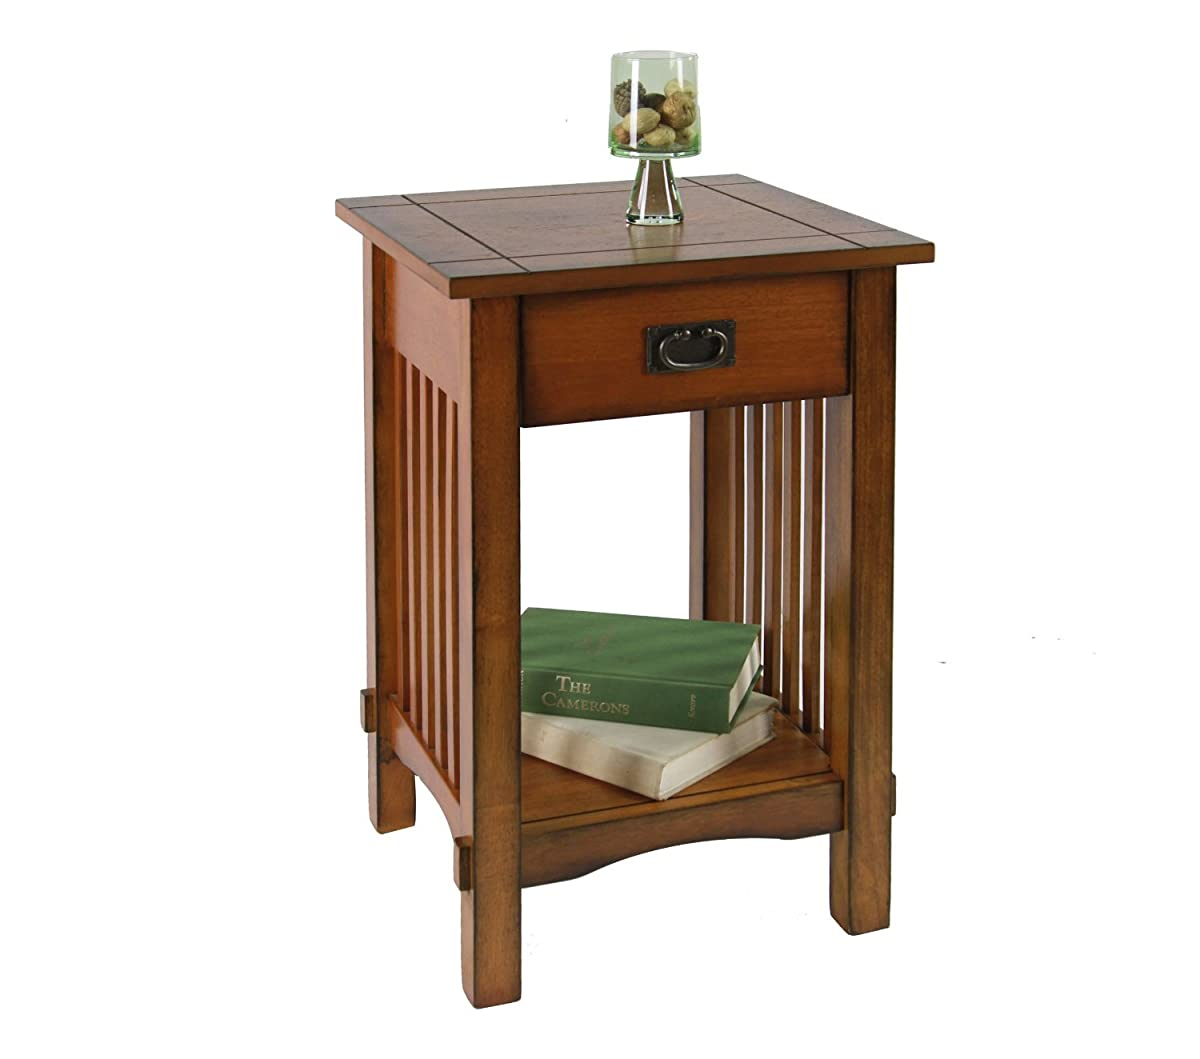 Legacy Decor Mission Style Telephone Stand/End Table in Antique Oak Finish w/Drawer